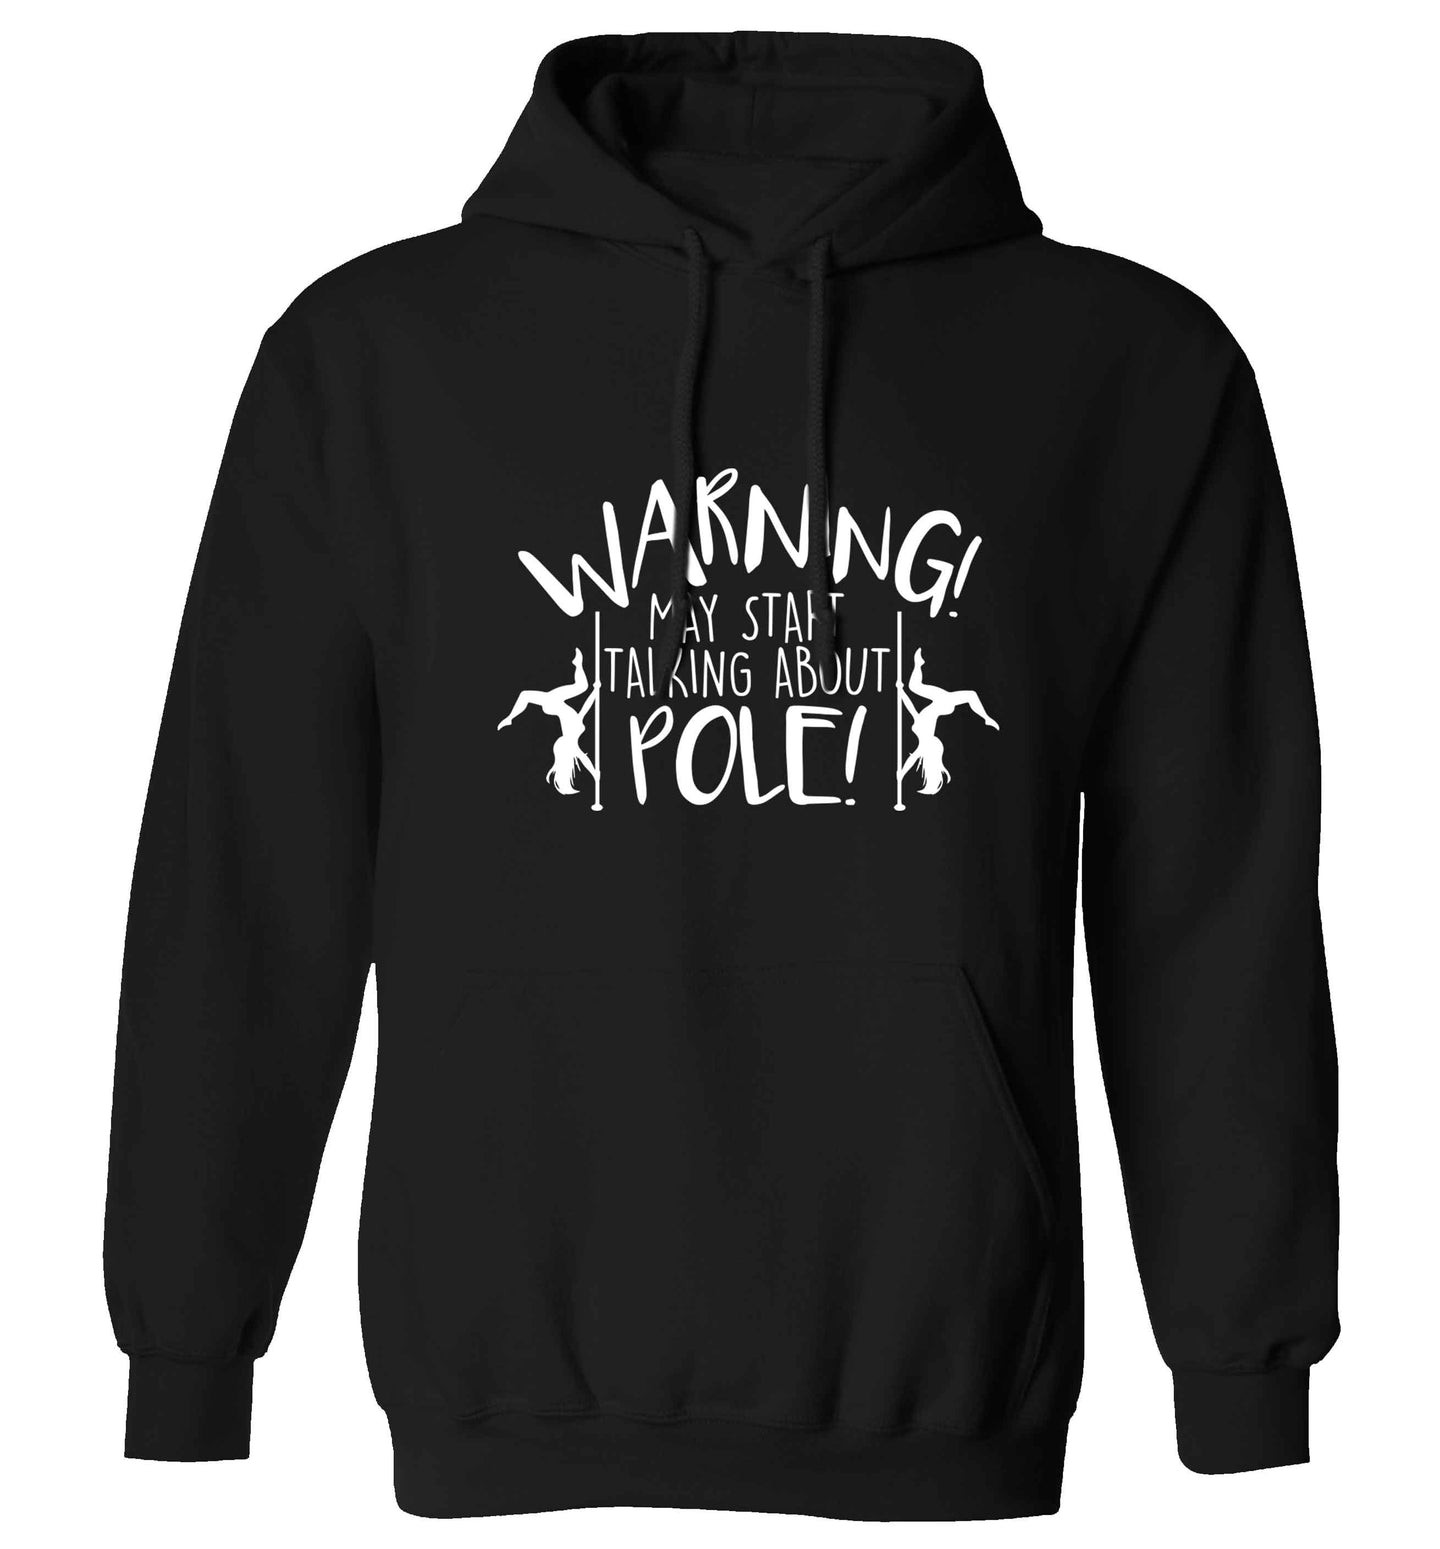 Warning may start talking about pole  adults unisex black hoodie 2XL